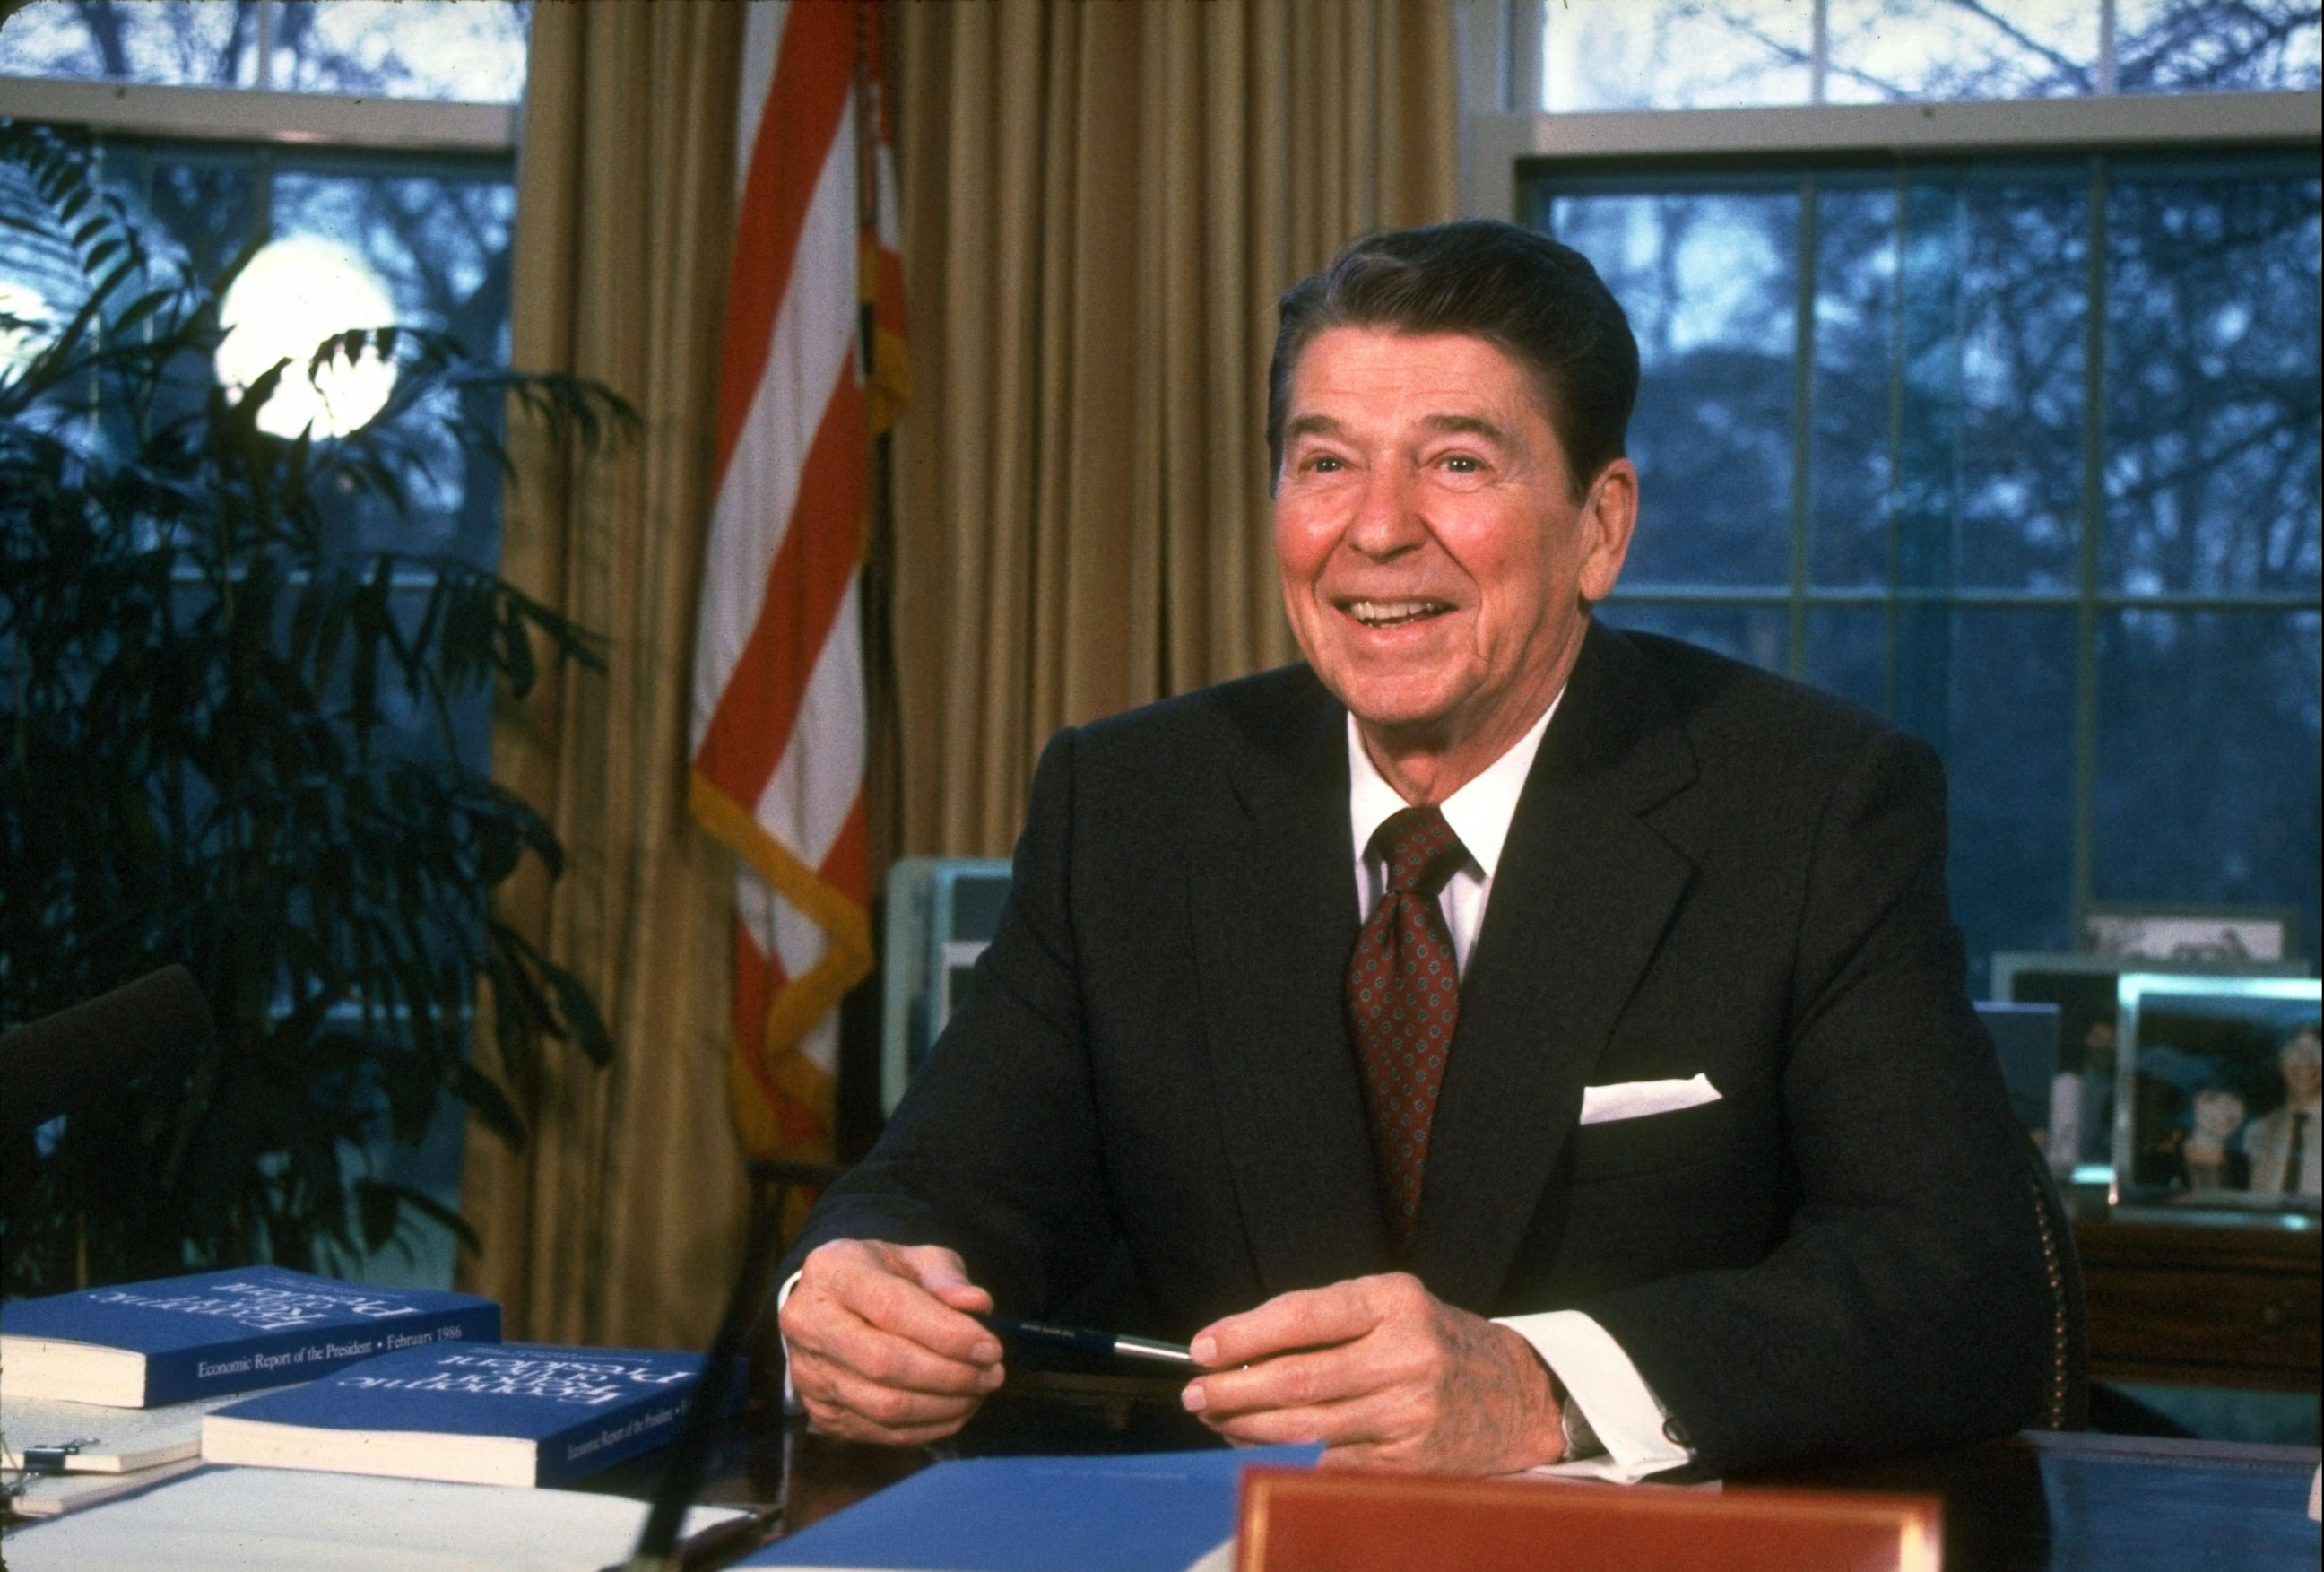 filethe reagan library oval office. photo president ronald reagan working on economic report and legislative message at his desk in the oval office of white house feb 1 filethe library